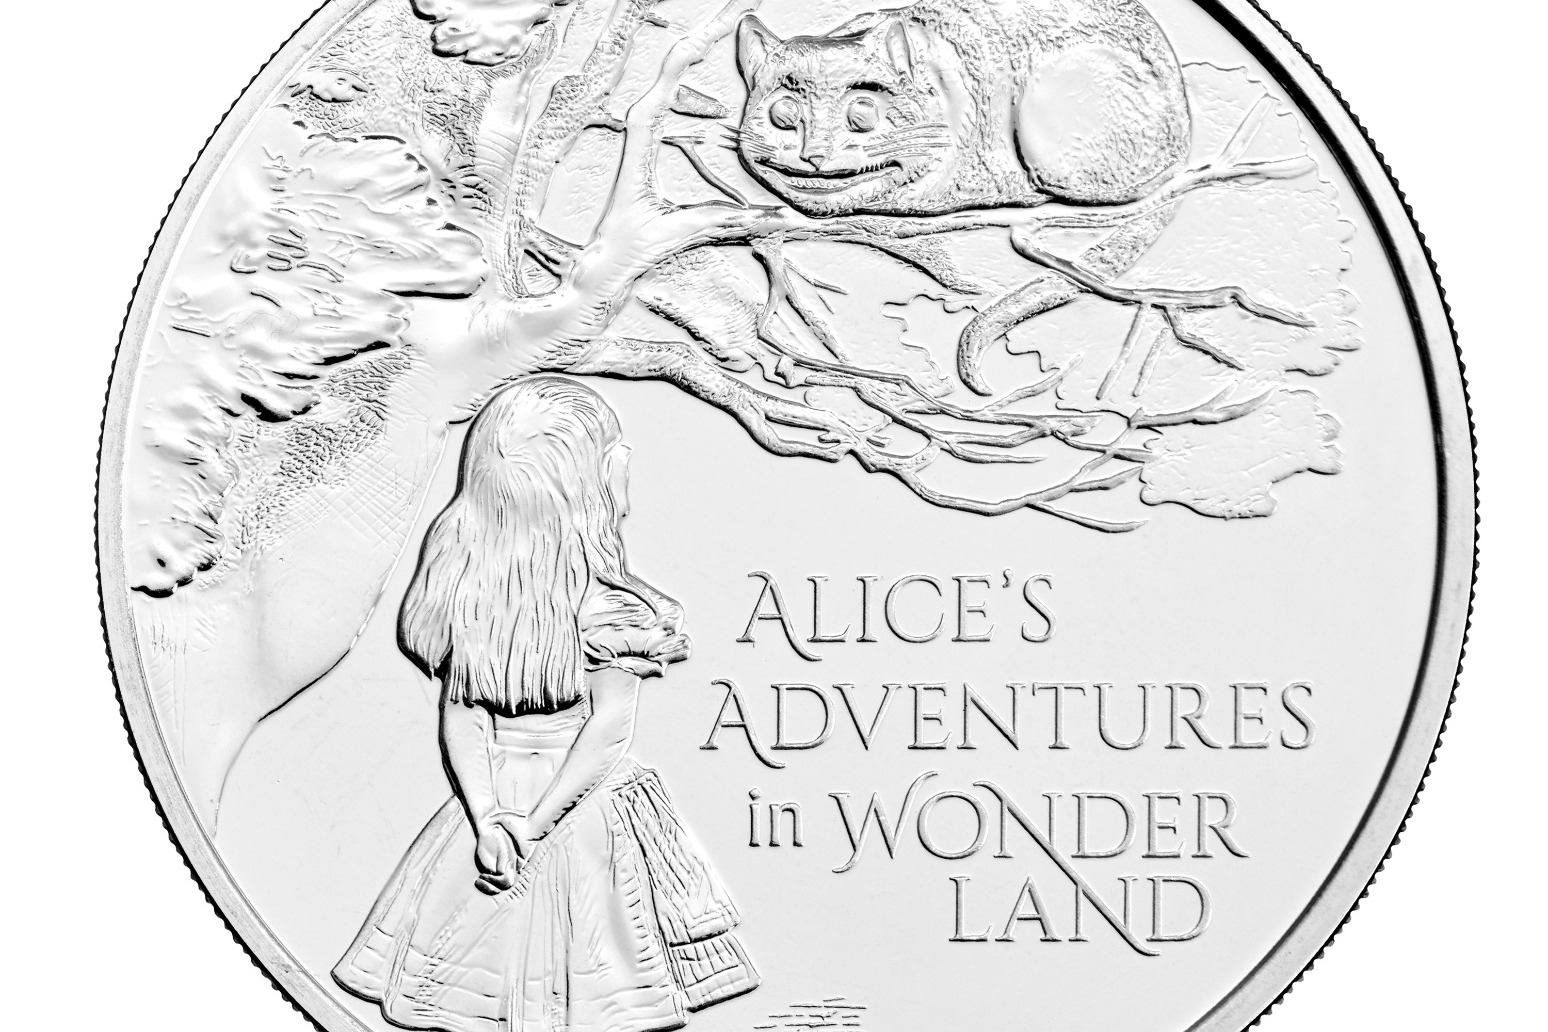 Alice in Wonderland coin released to mark 150 years since book's publication